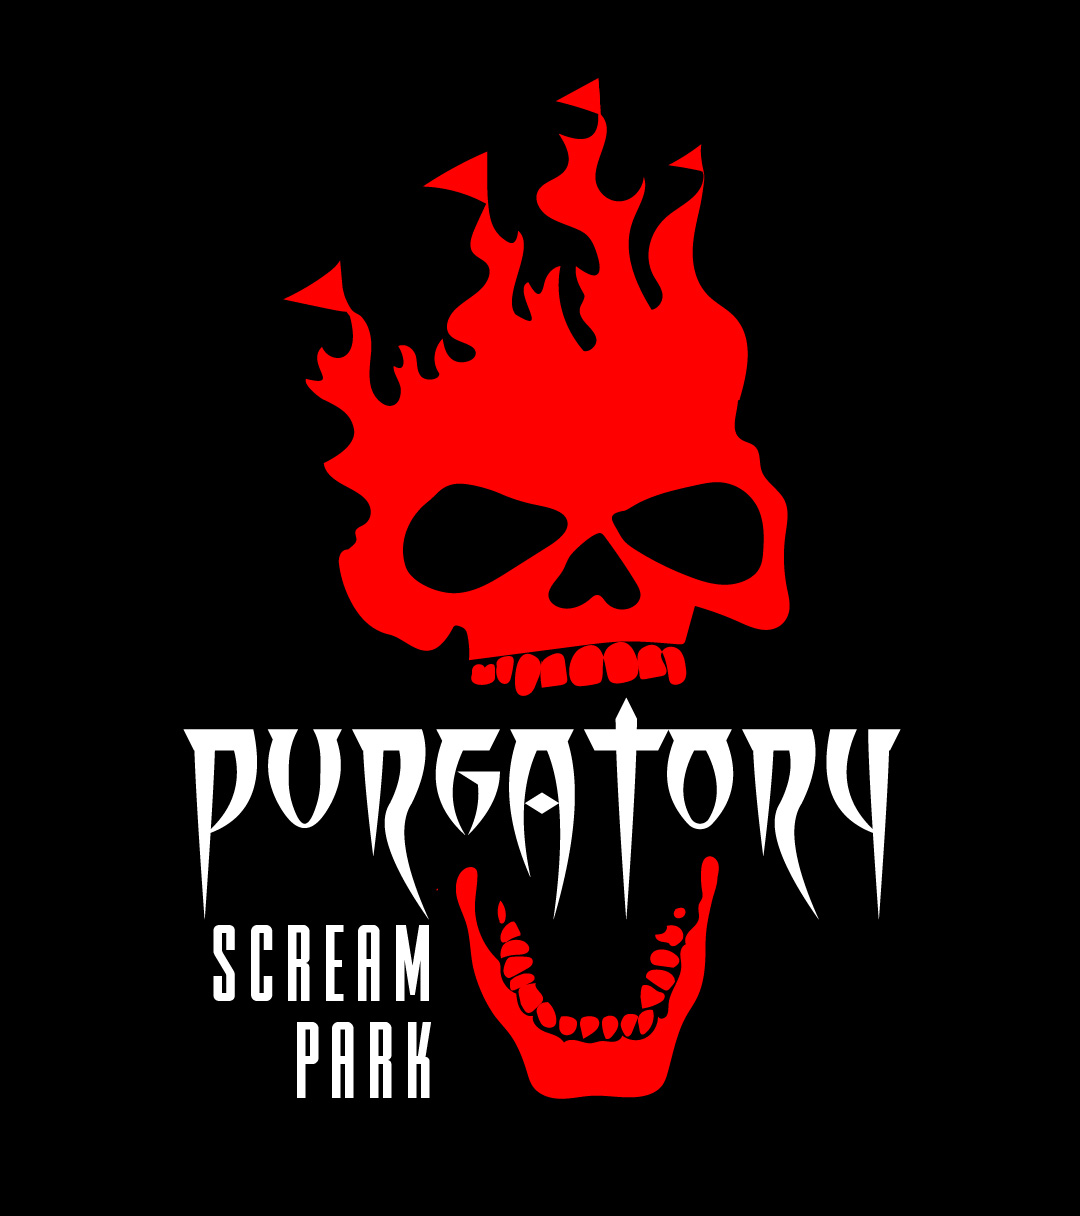 Purgatory Scream Park